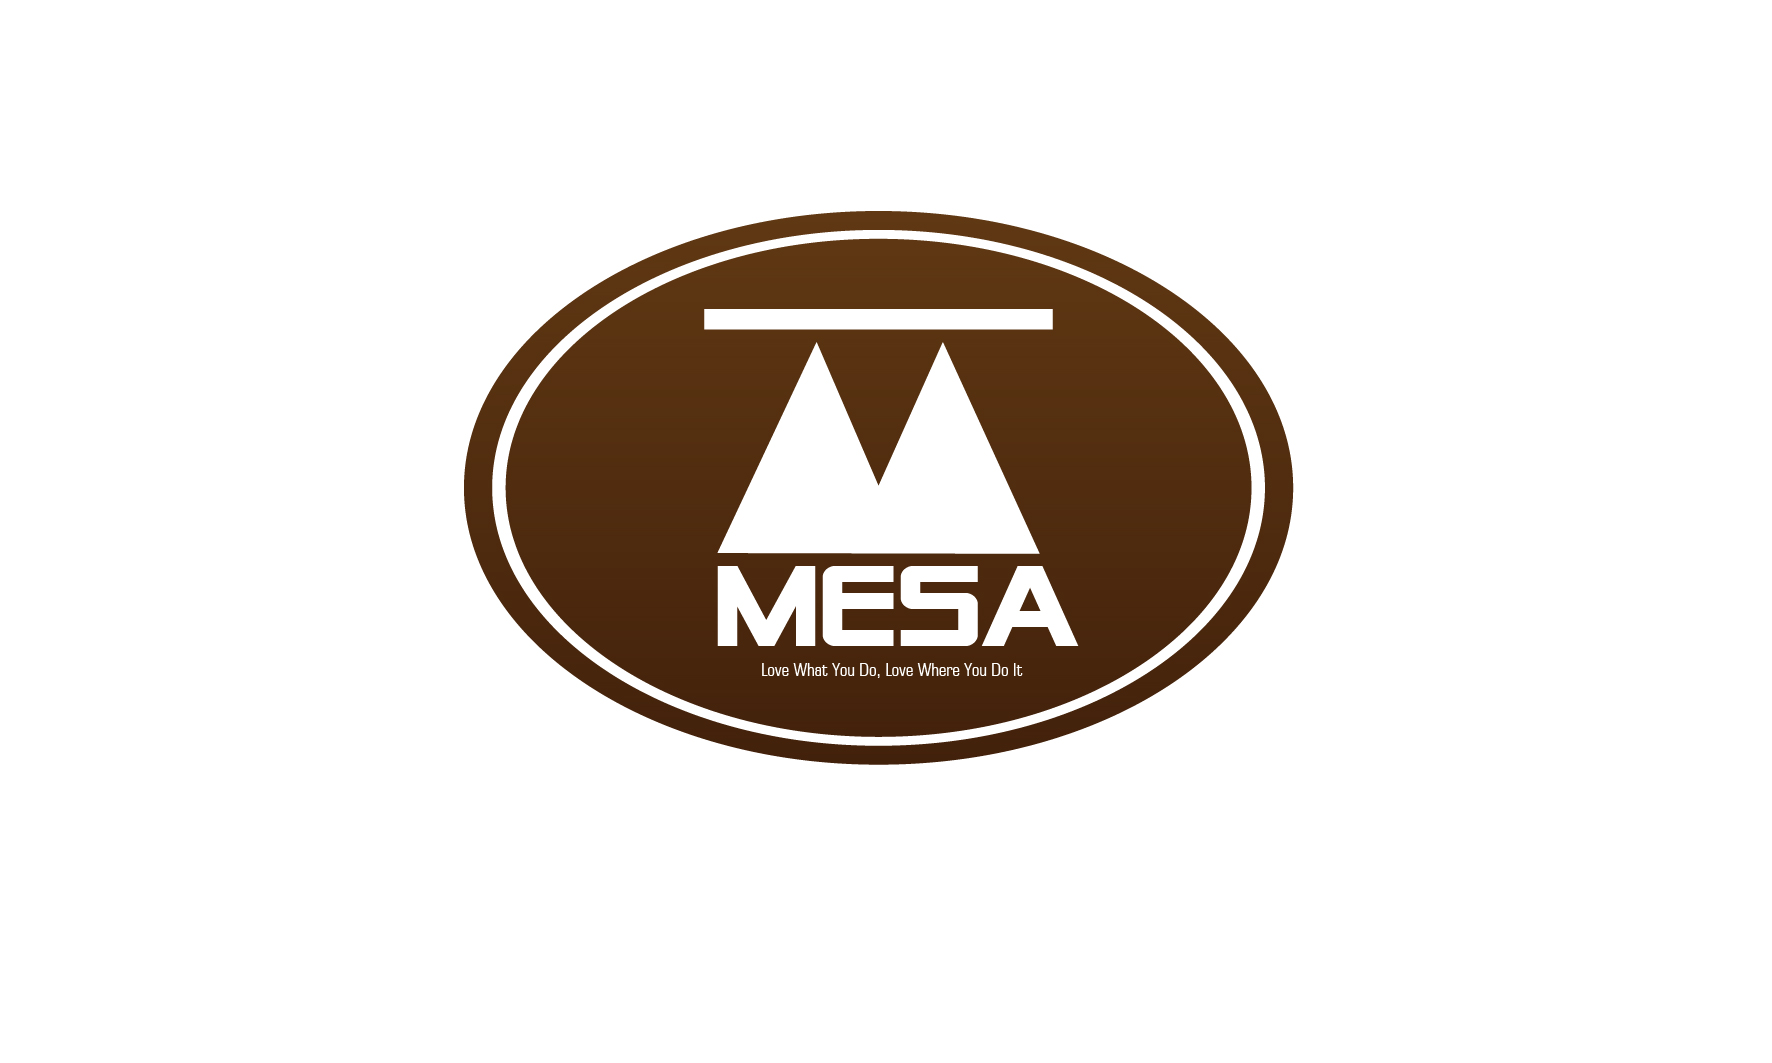 Logo Design by 3draw - Entry No. 112 in the Logo Design Contest Logo Design for Mesa.